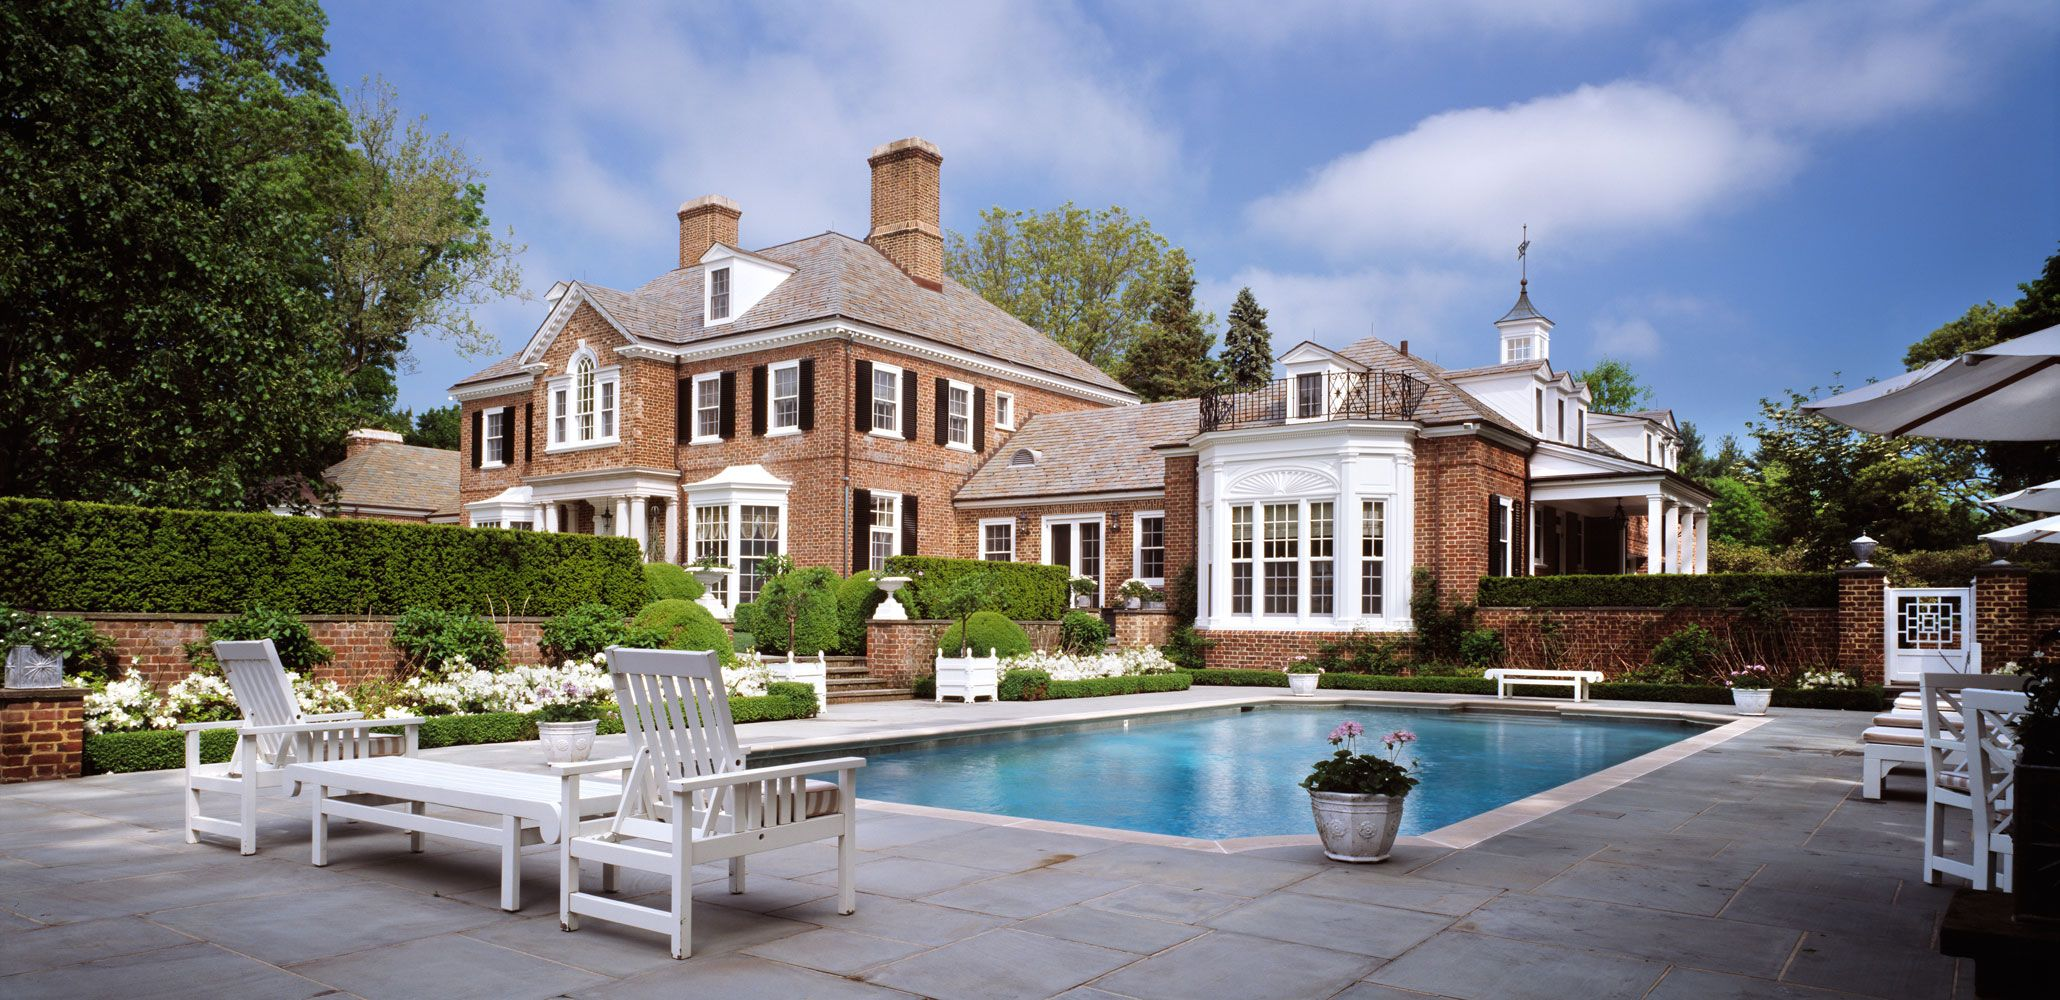 Charles hilton architects american brick georgian for Traditional american architecture